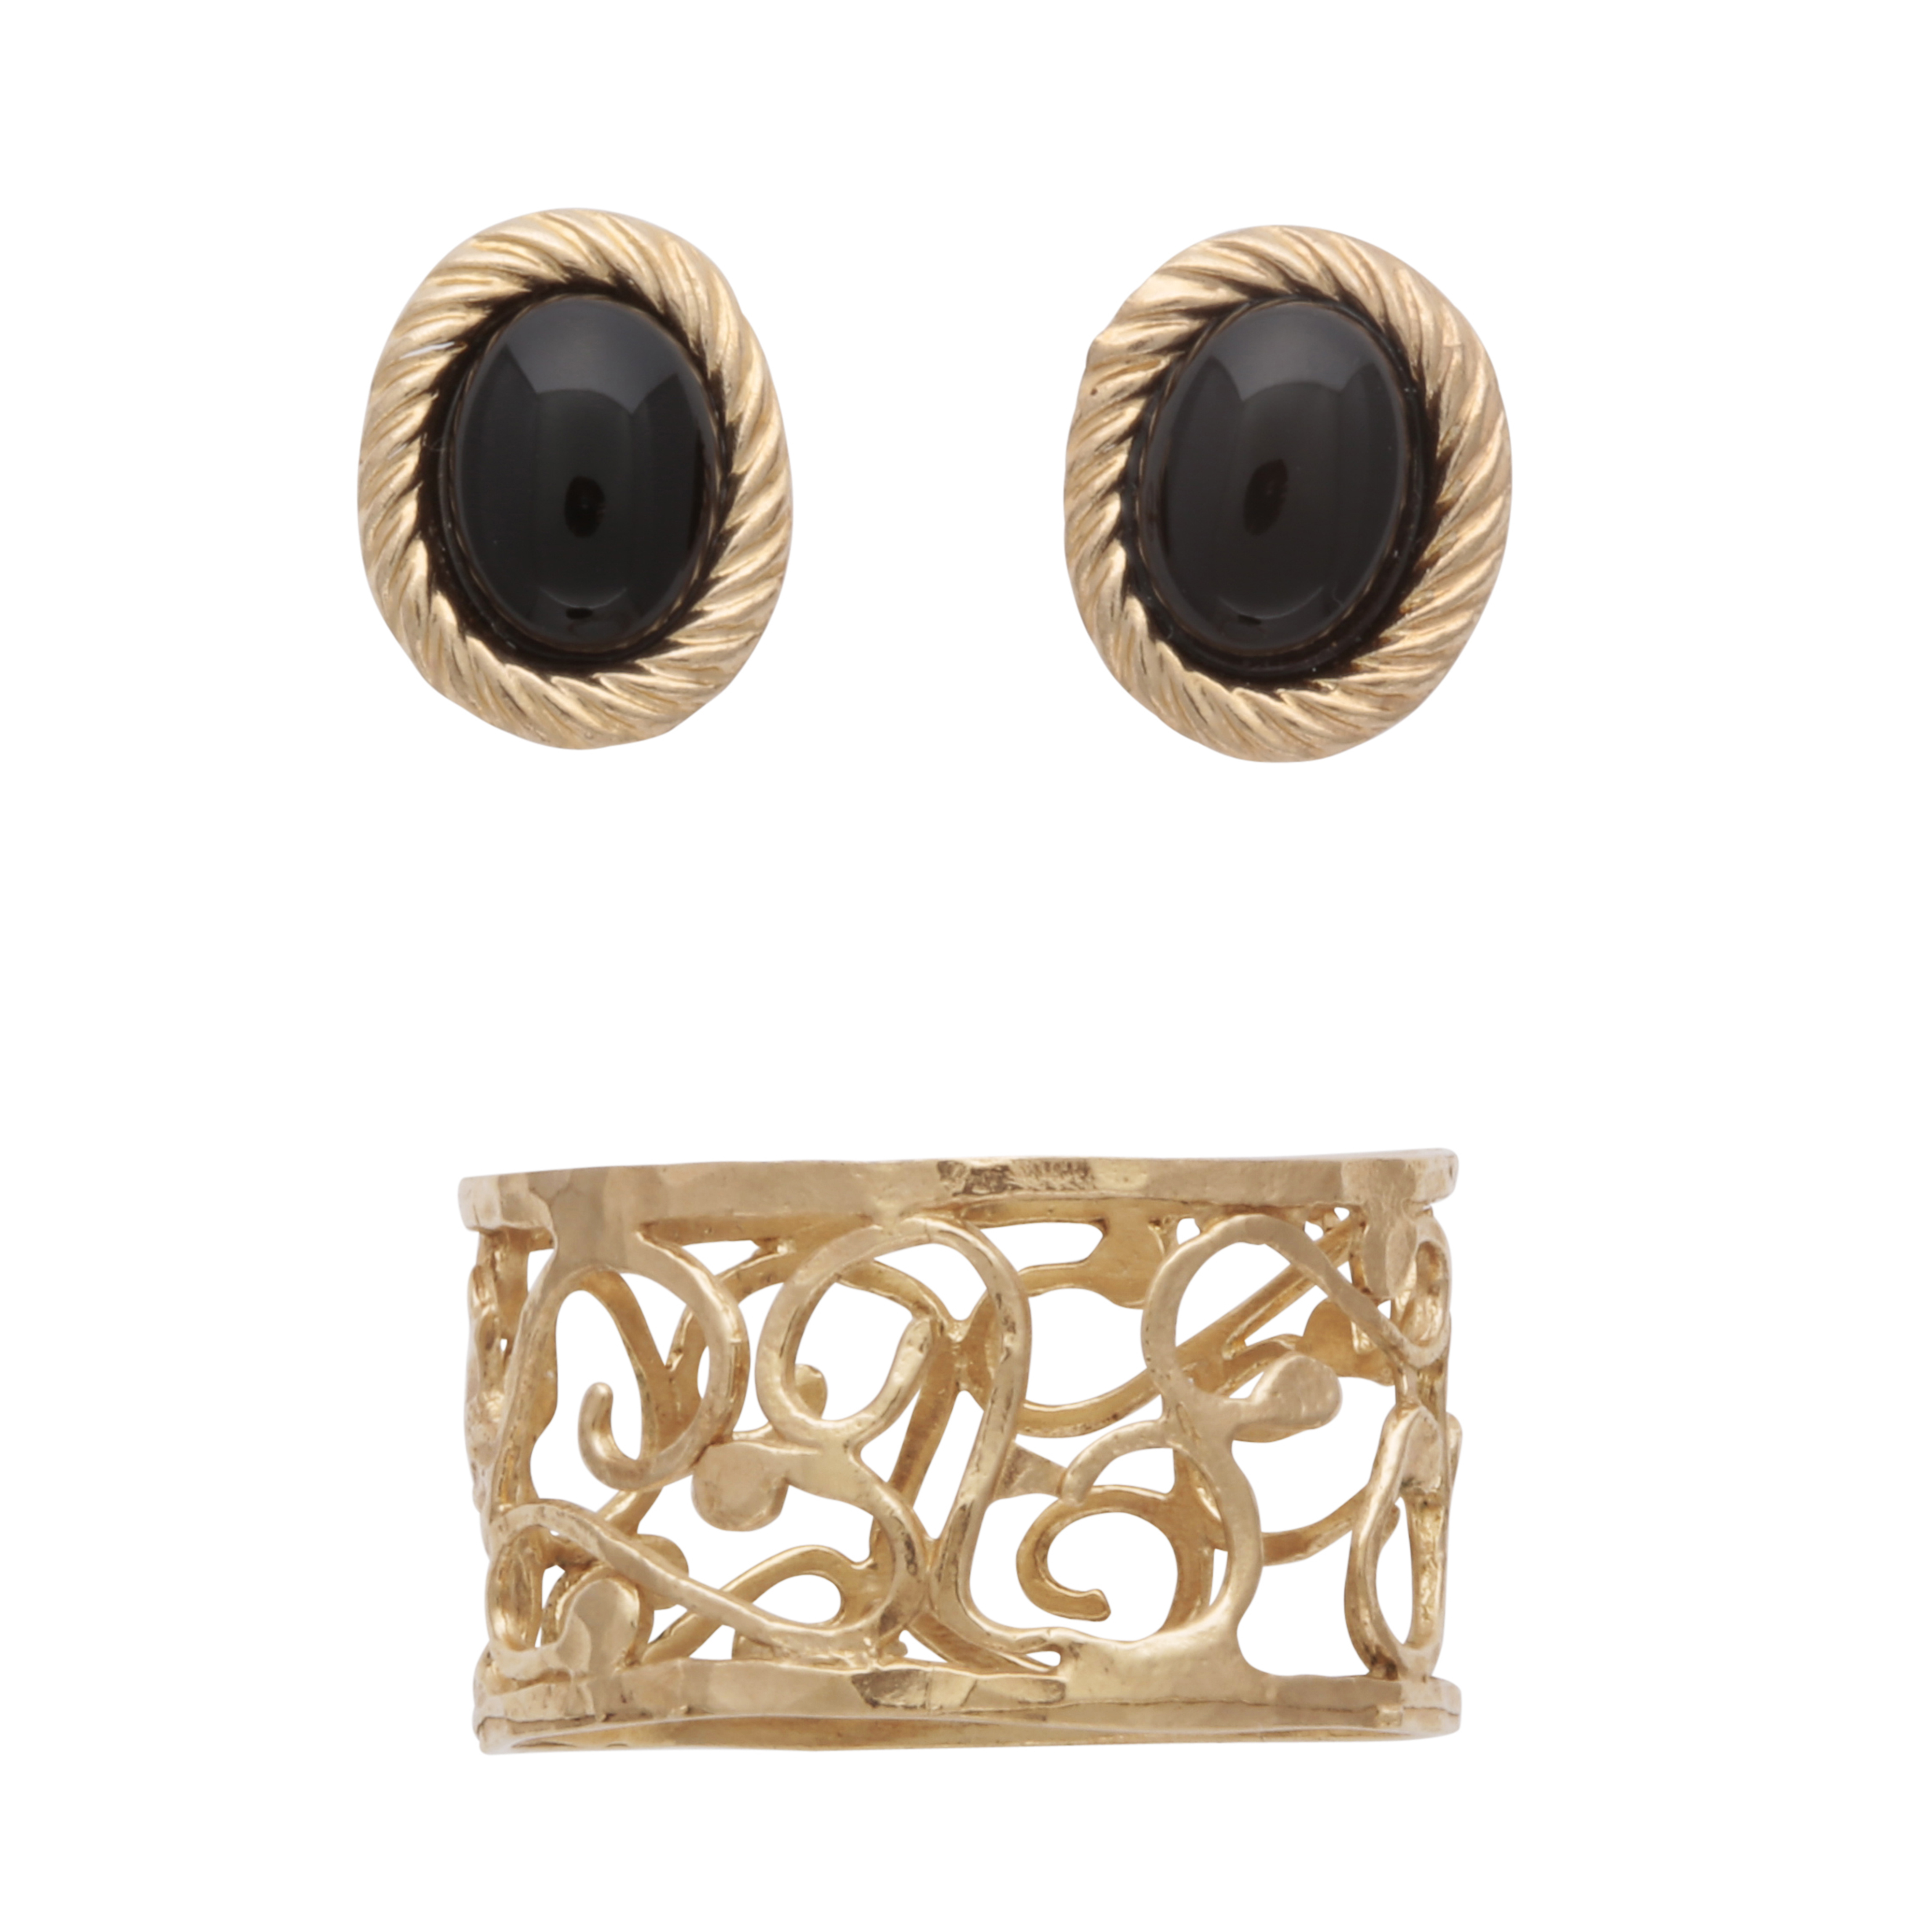 Los 195 - A 9ct yellow gold ring with pierced, filigree scroll design, together with a pair of black hardstone